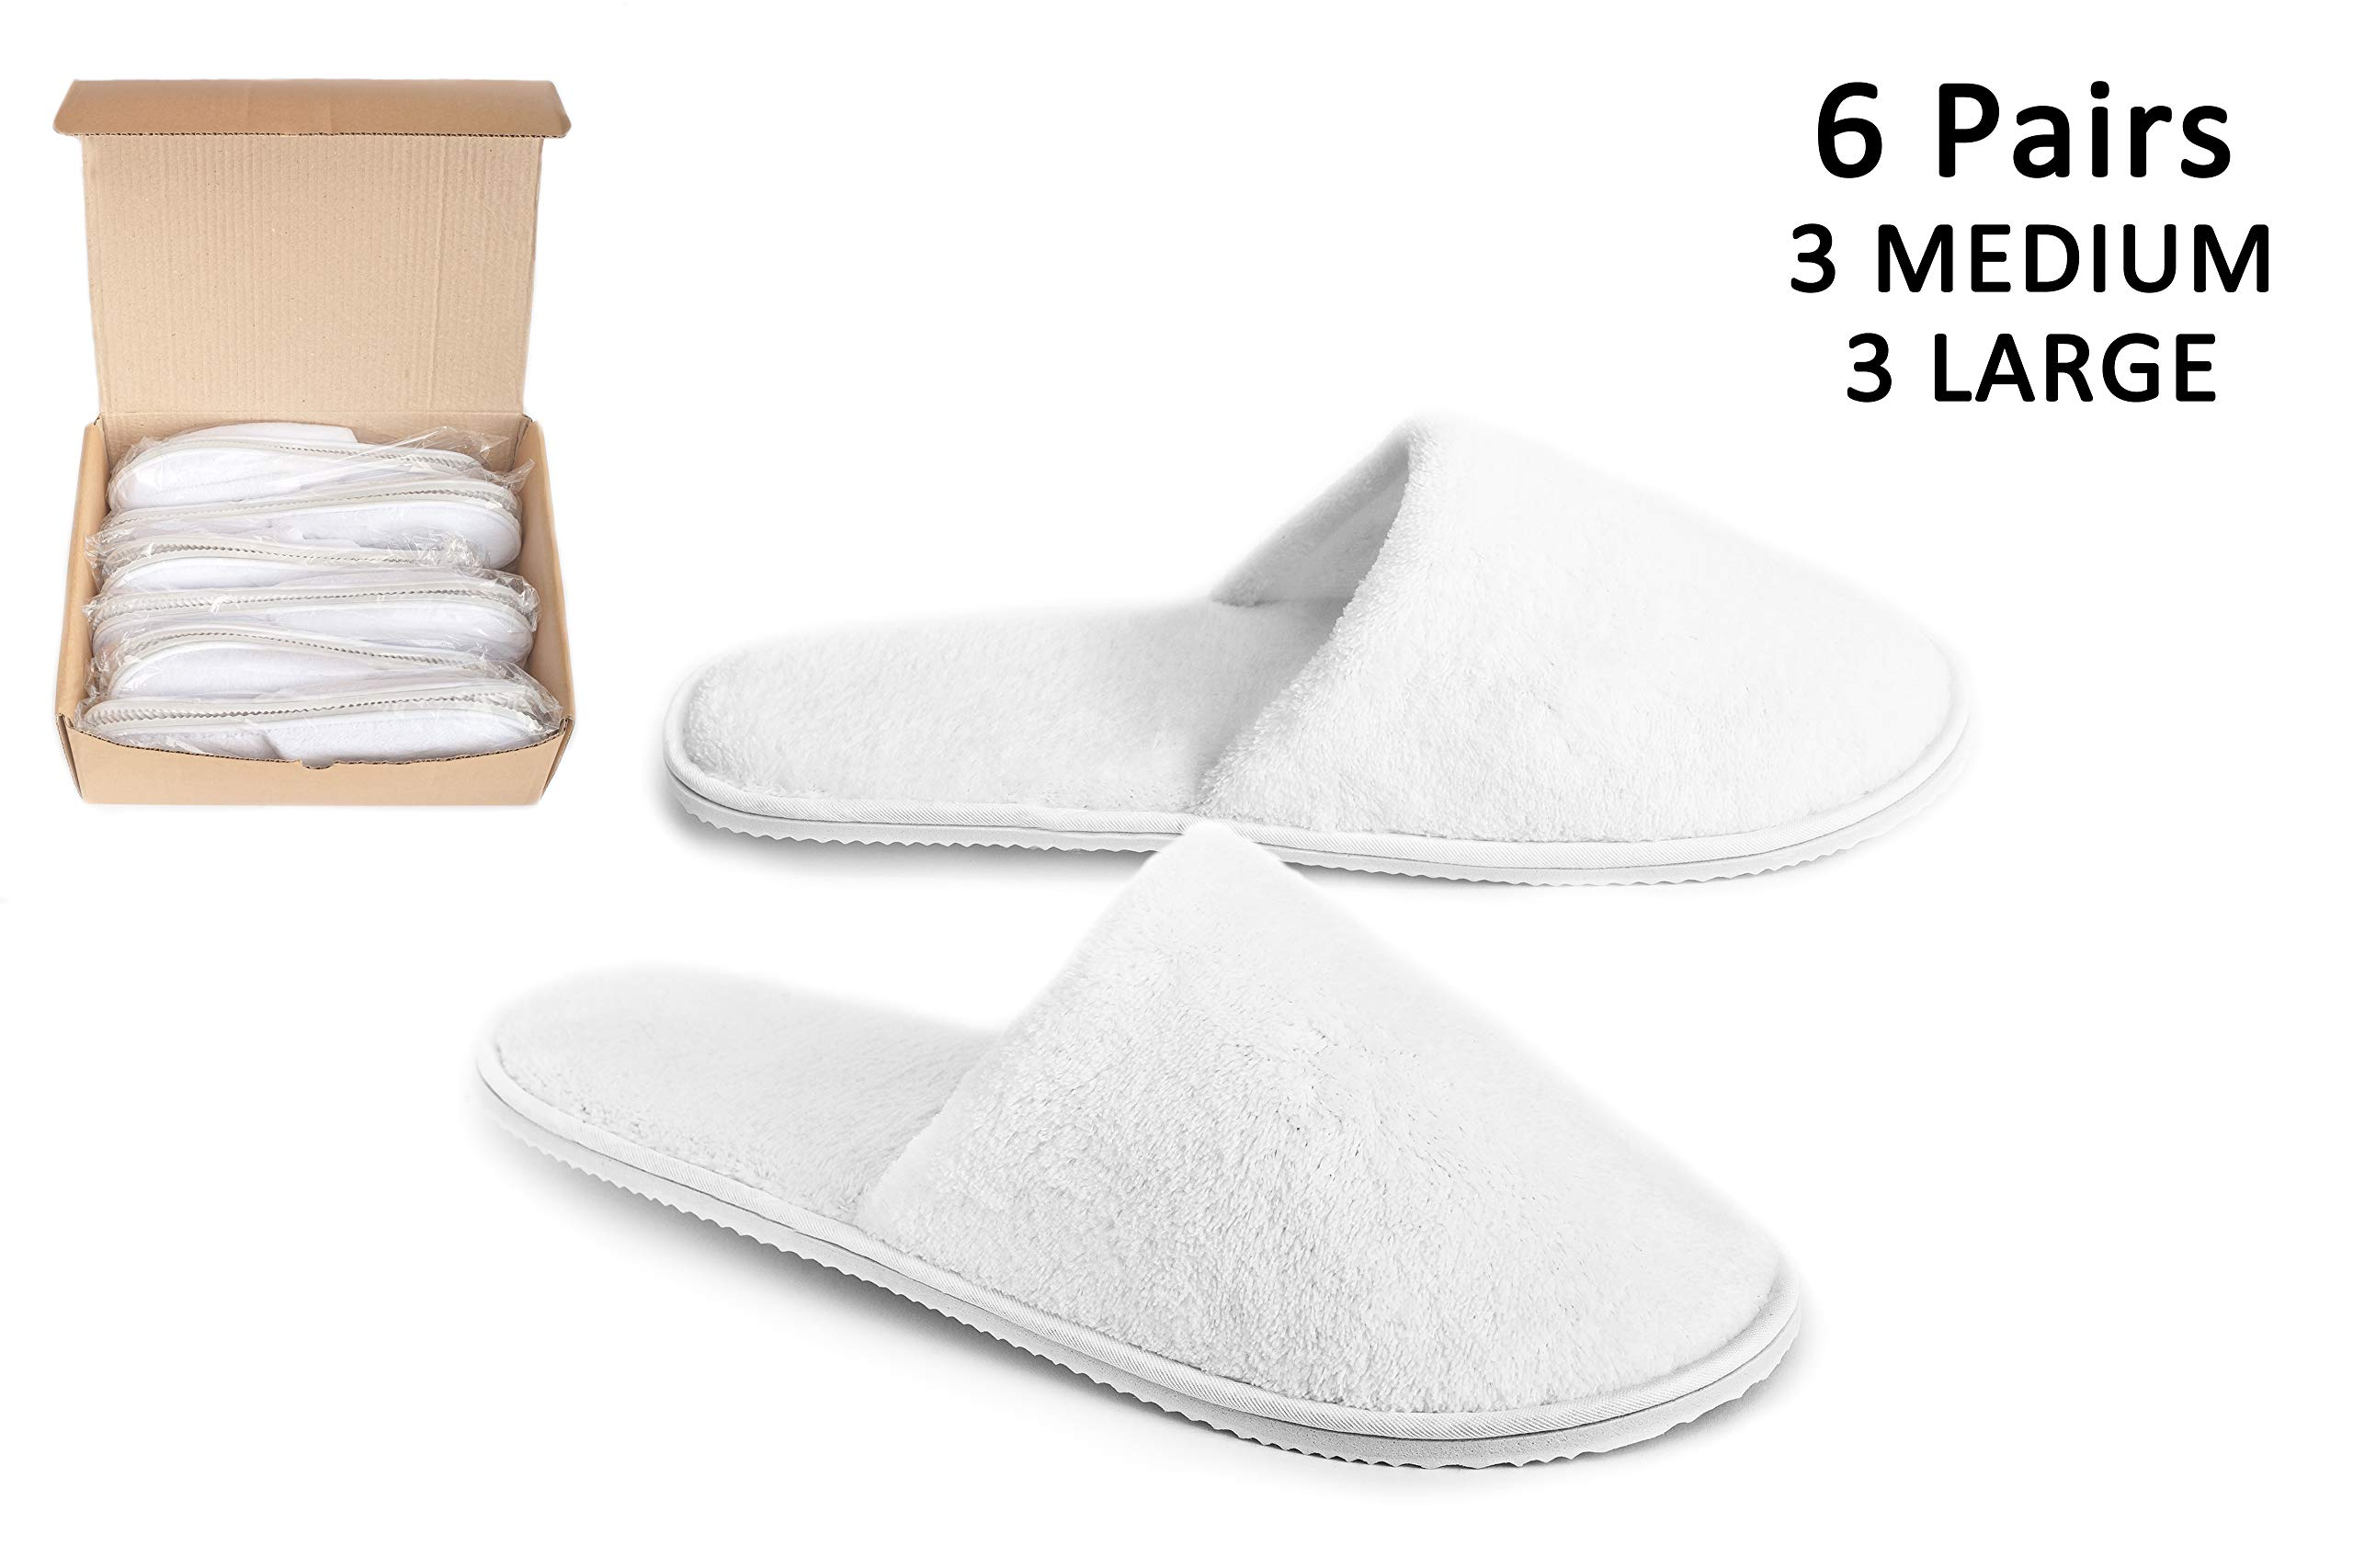 DŠ Stuff Spa Slippers - 6 Pairs (White, 3 Large,3 Medium) Cotton Coral Velvet Closed Toe Fits Most Men and Women, for Home Hotel Guest Travel Used, Deluxe Padded Sole for Extra Comfort, Non-Slip by DŠ Stuff